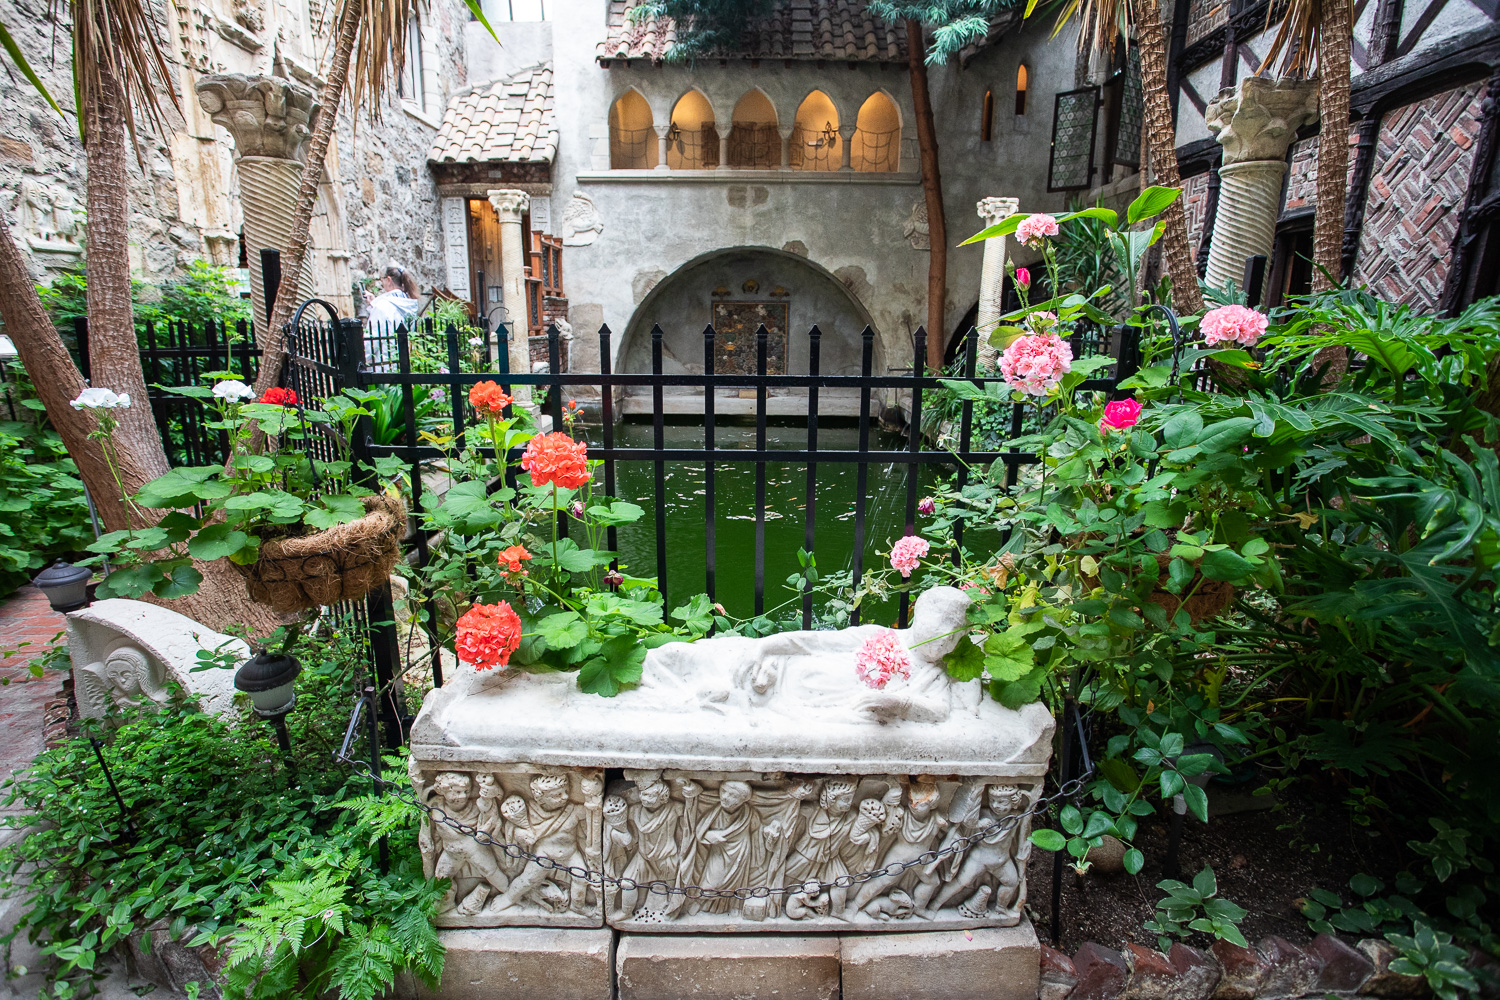 The Hammond Castle contains a room which has a pool. John Hays Hammond, Jr. used to take a dip here, sometimes jumping off from the second story ledge in the background.